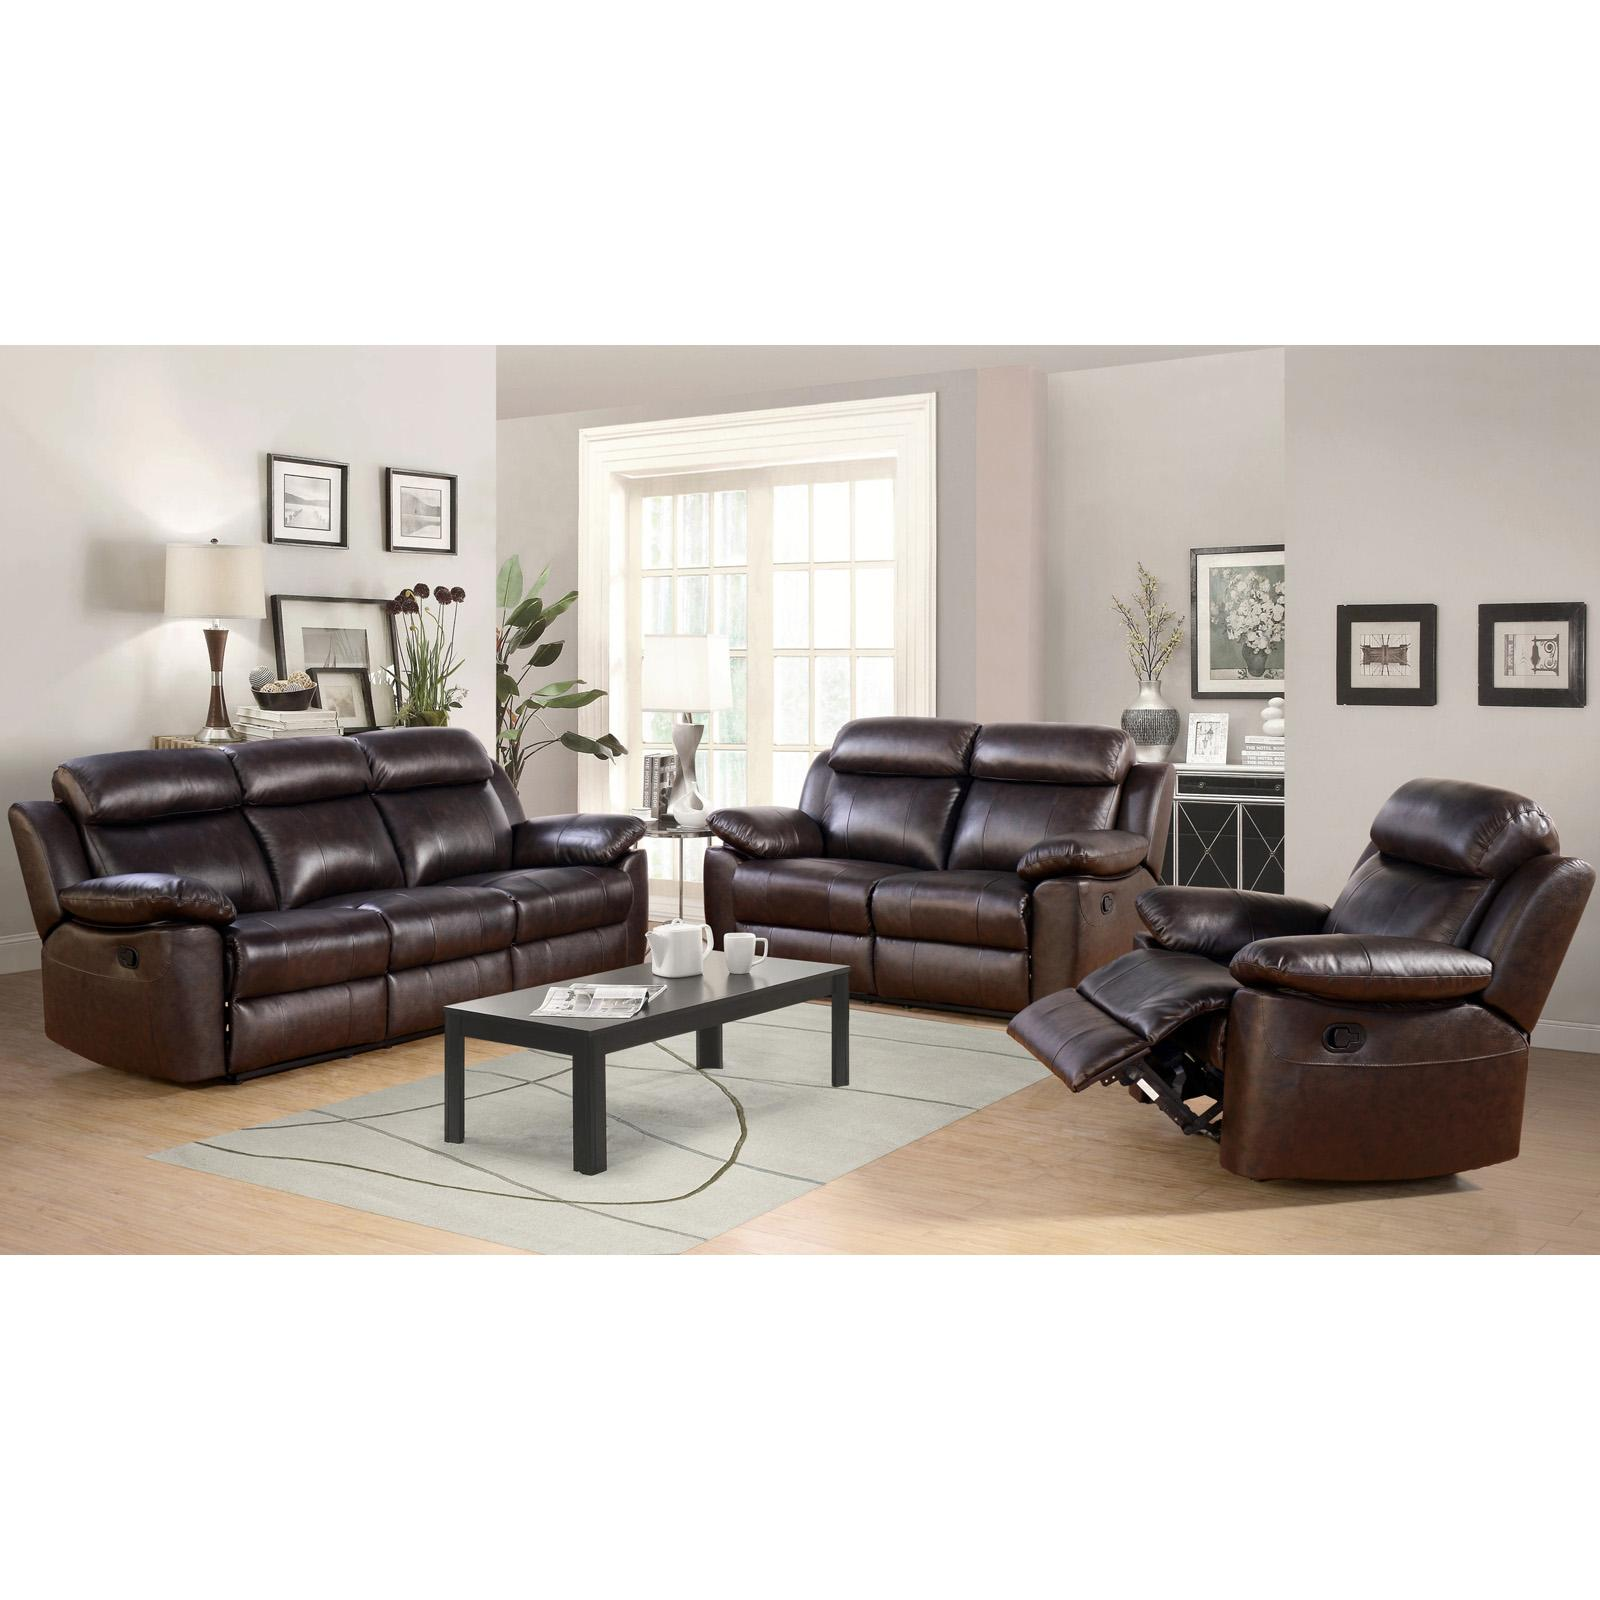 Marvelous Details About Abbyson Dominica Top Grain Leather Reclining Sofa Set Brown Creativecarmelina Interior Chair Design Creativecarmelinacom